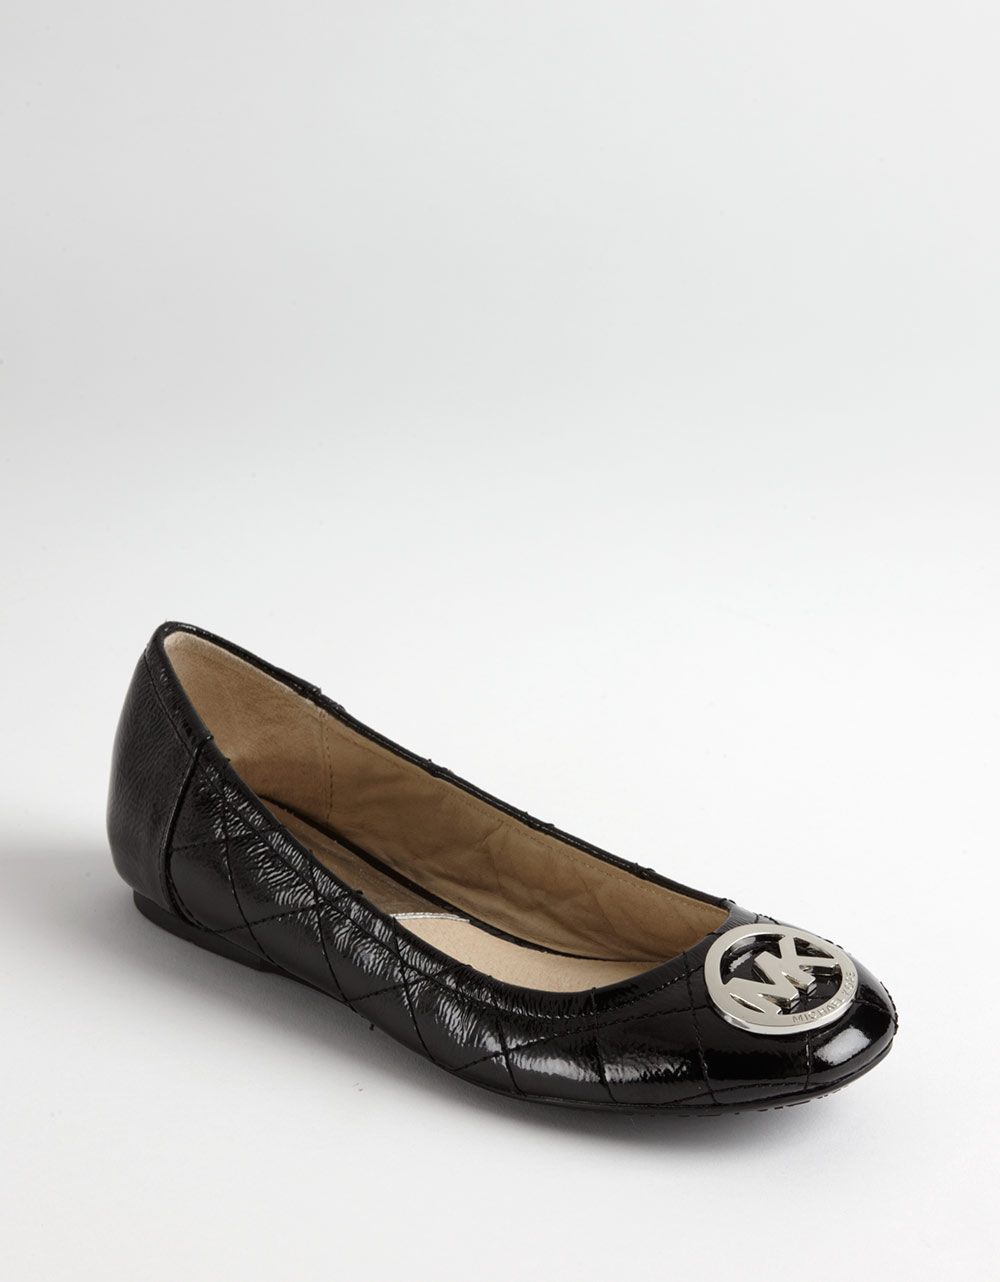 7f2ccbaca019 Lyst Michael Kors Fulton Quilted Leather Ballet Flats In Black. Fulton  Quilted Ballerina Flat